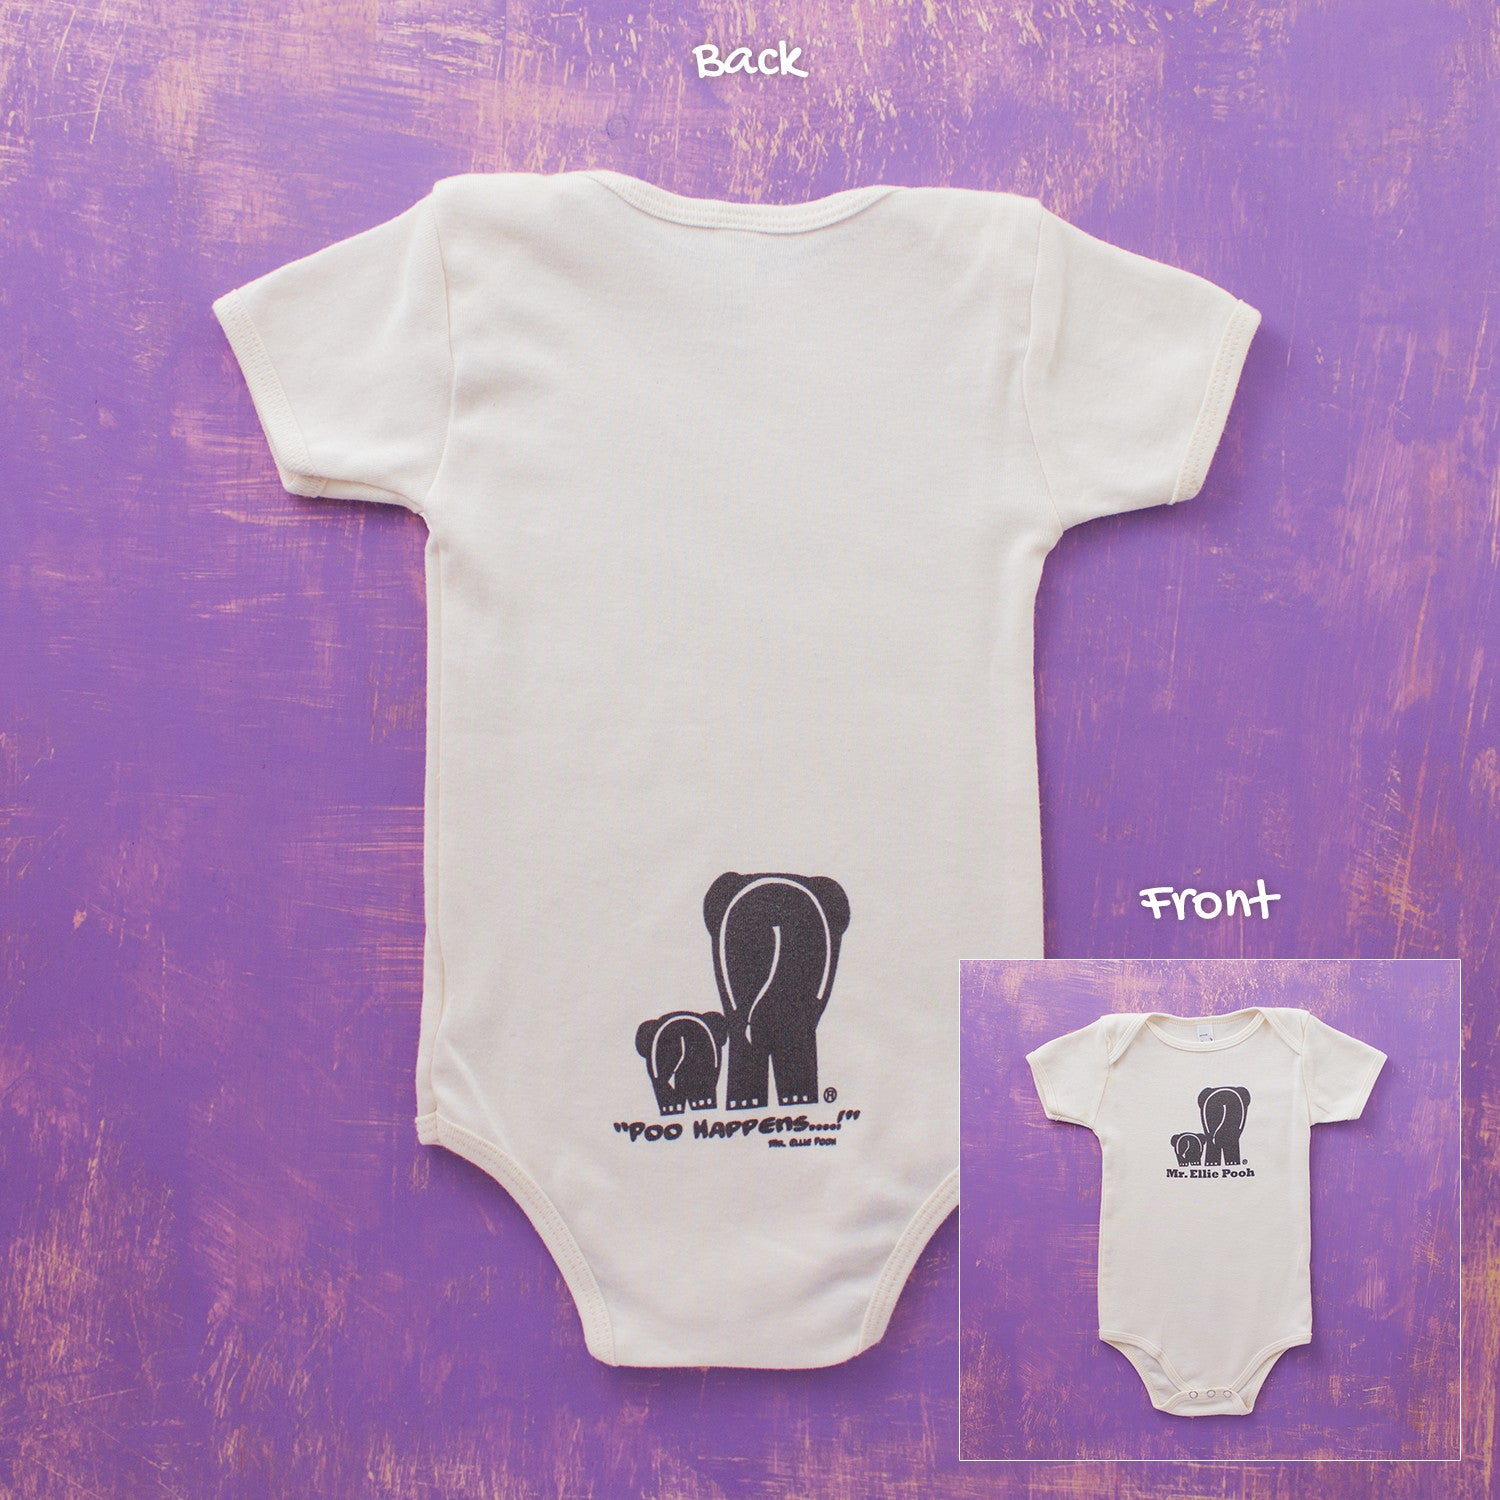 Mr. Ellie Pooh Organic Cotton Baby Onesies